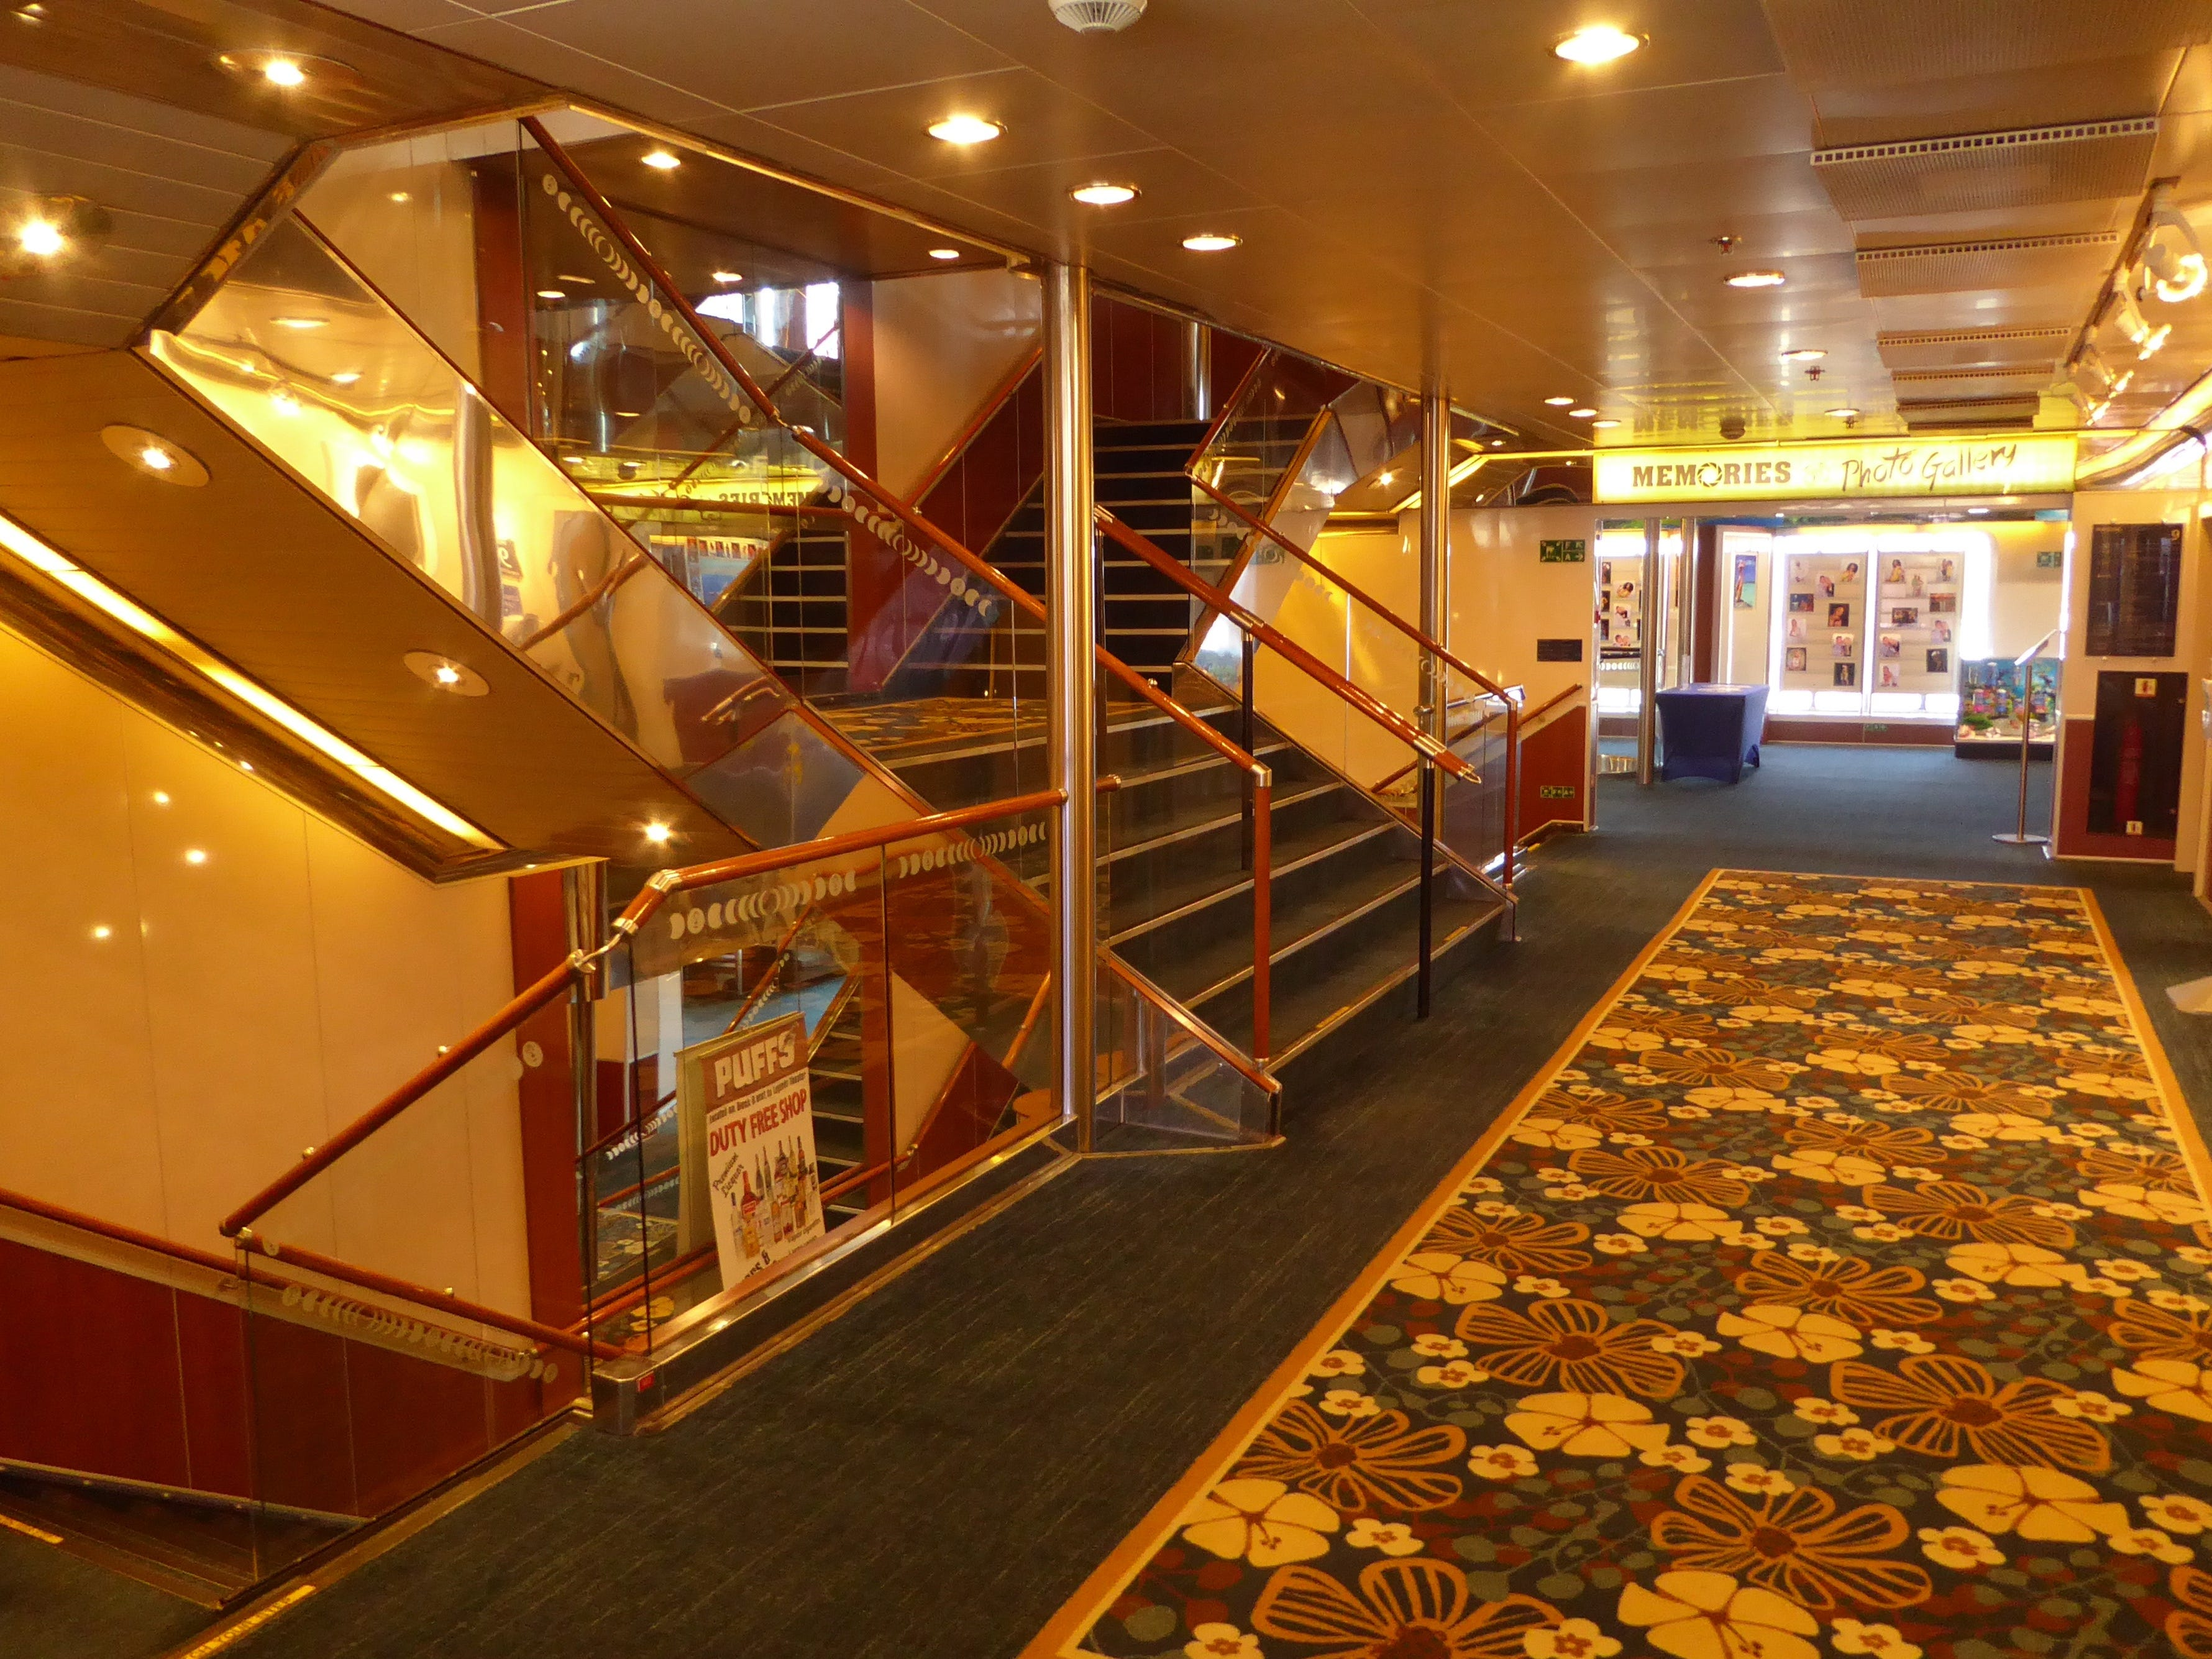 The Grand Celebration is vertically accessed via three main stair towers and eight lifts. This is the forward stair tower on Paradise Deck.